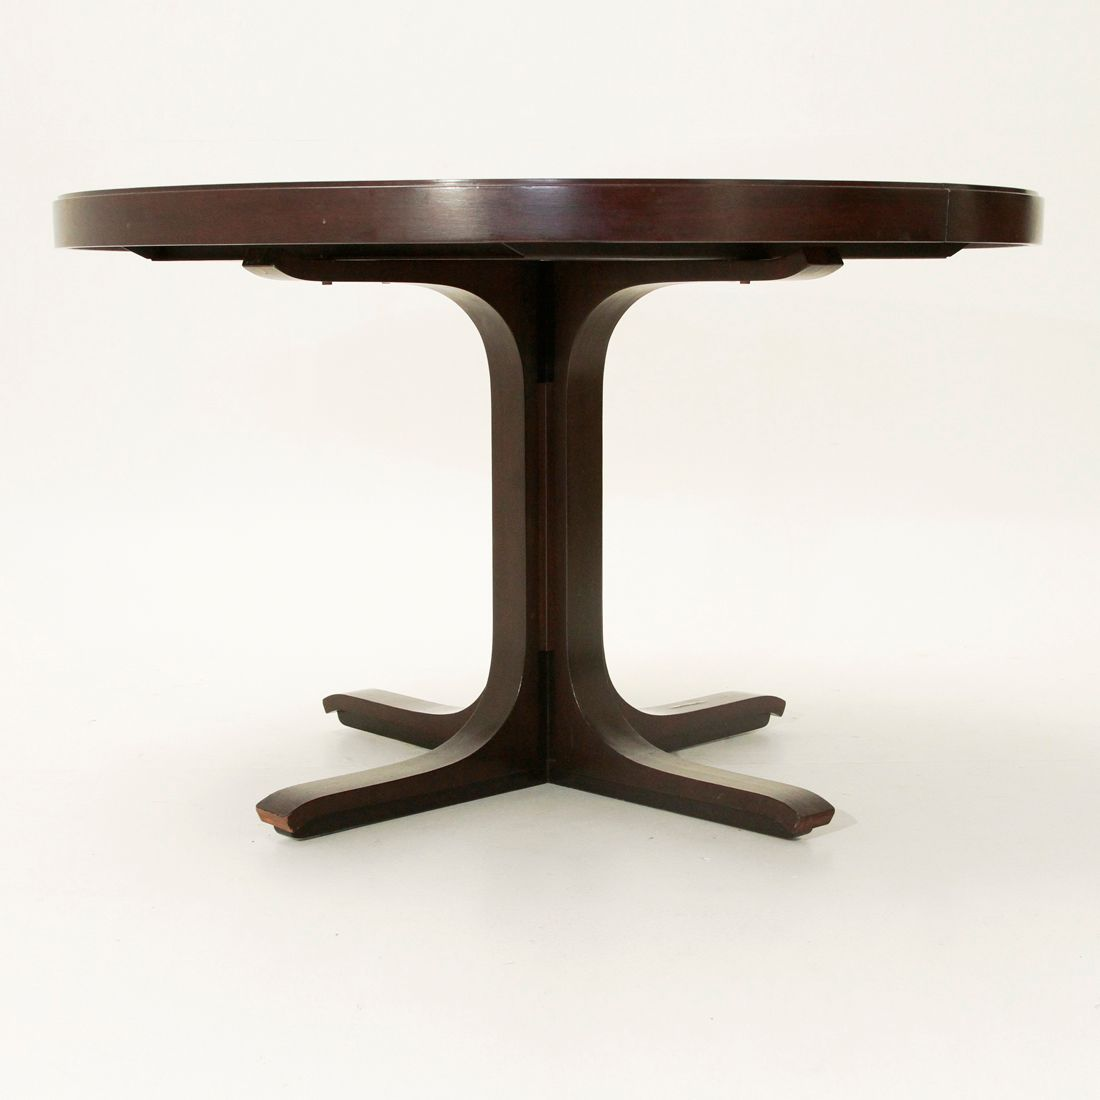 Extensible dining table by giovanni ausenda for stilwood 1963 for sale at pa - Table extensible cdiscount ...